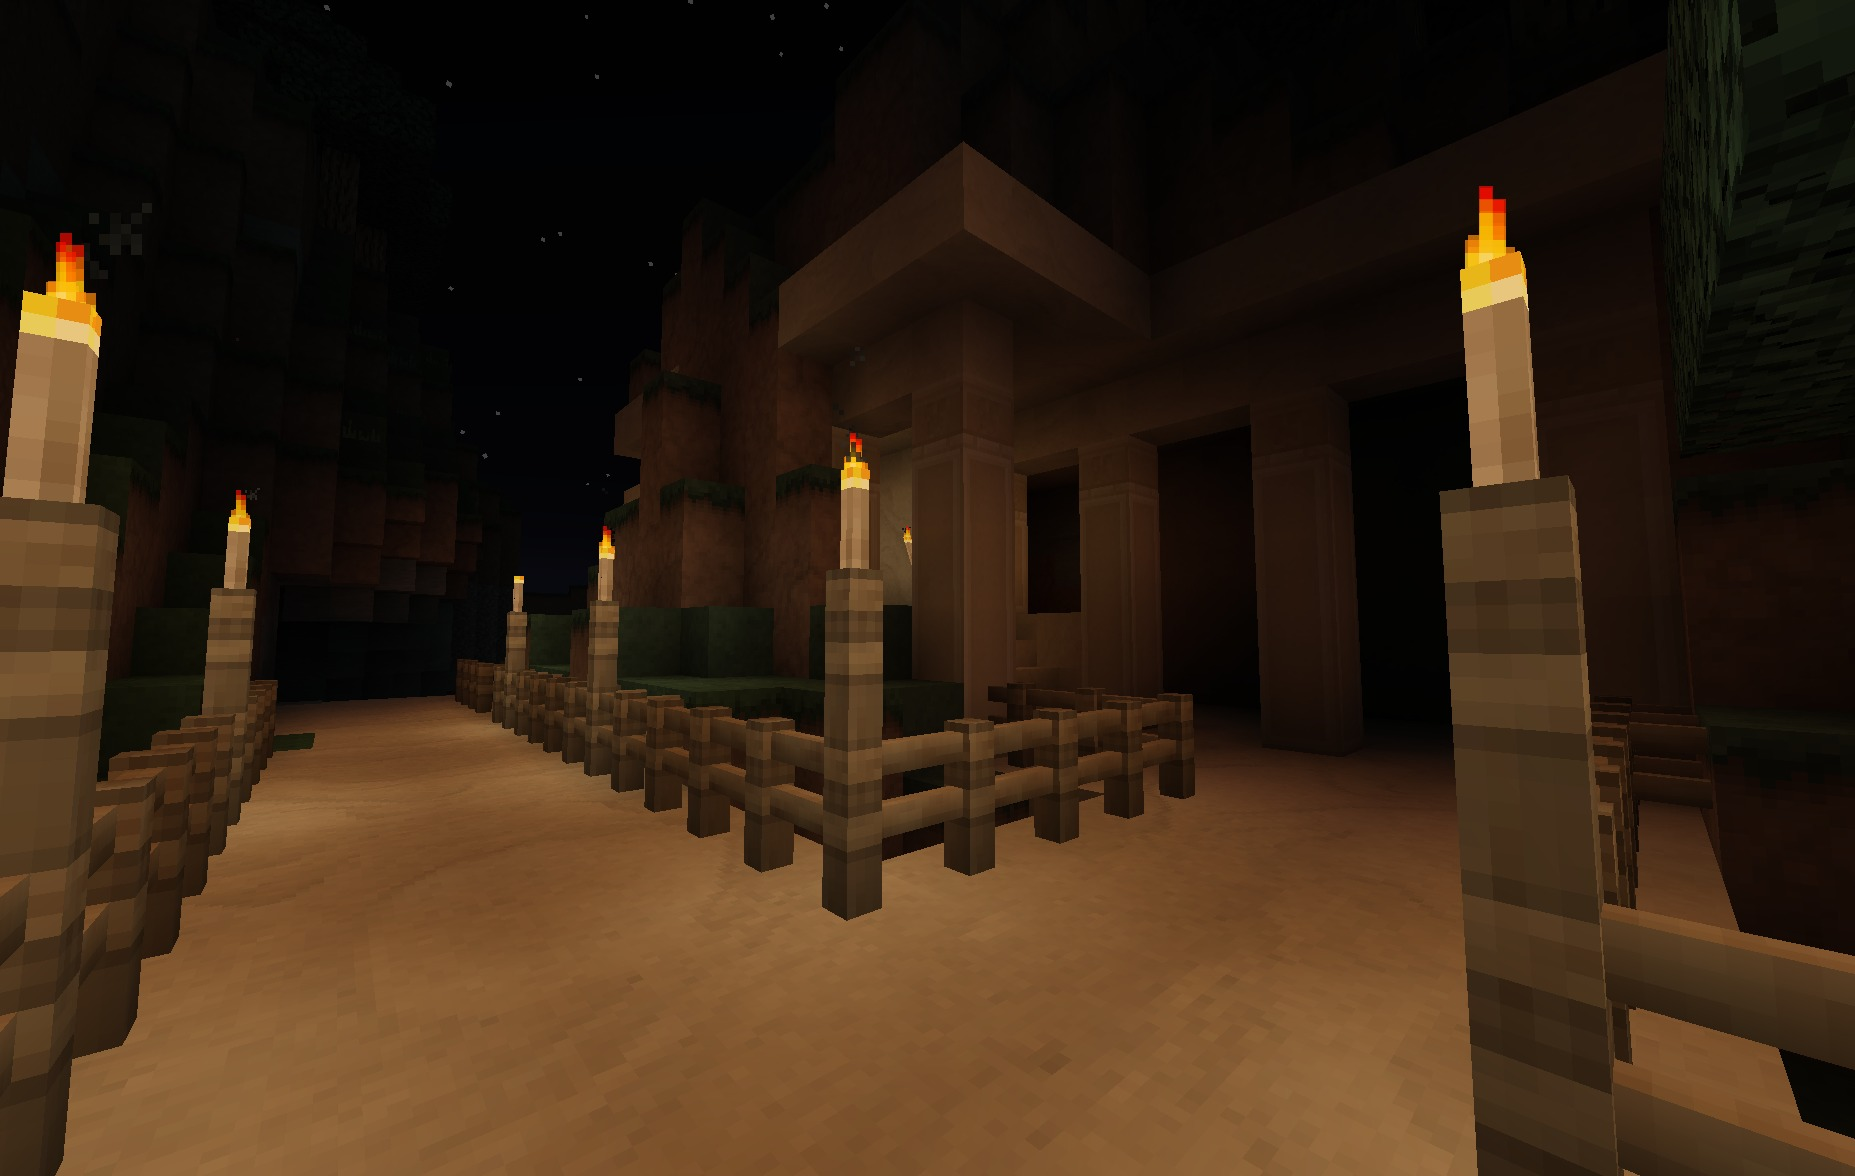 029b8  Elementalessence texture pack 2 [1.4.7/1.4.6] [16x] ElementalEssence Texture Pack Download